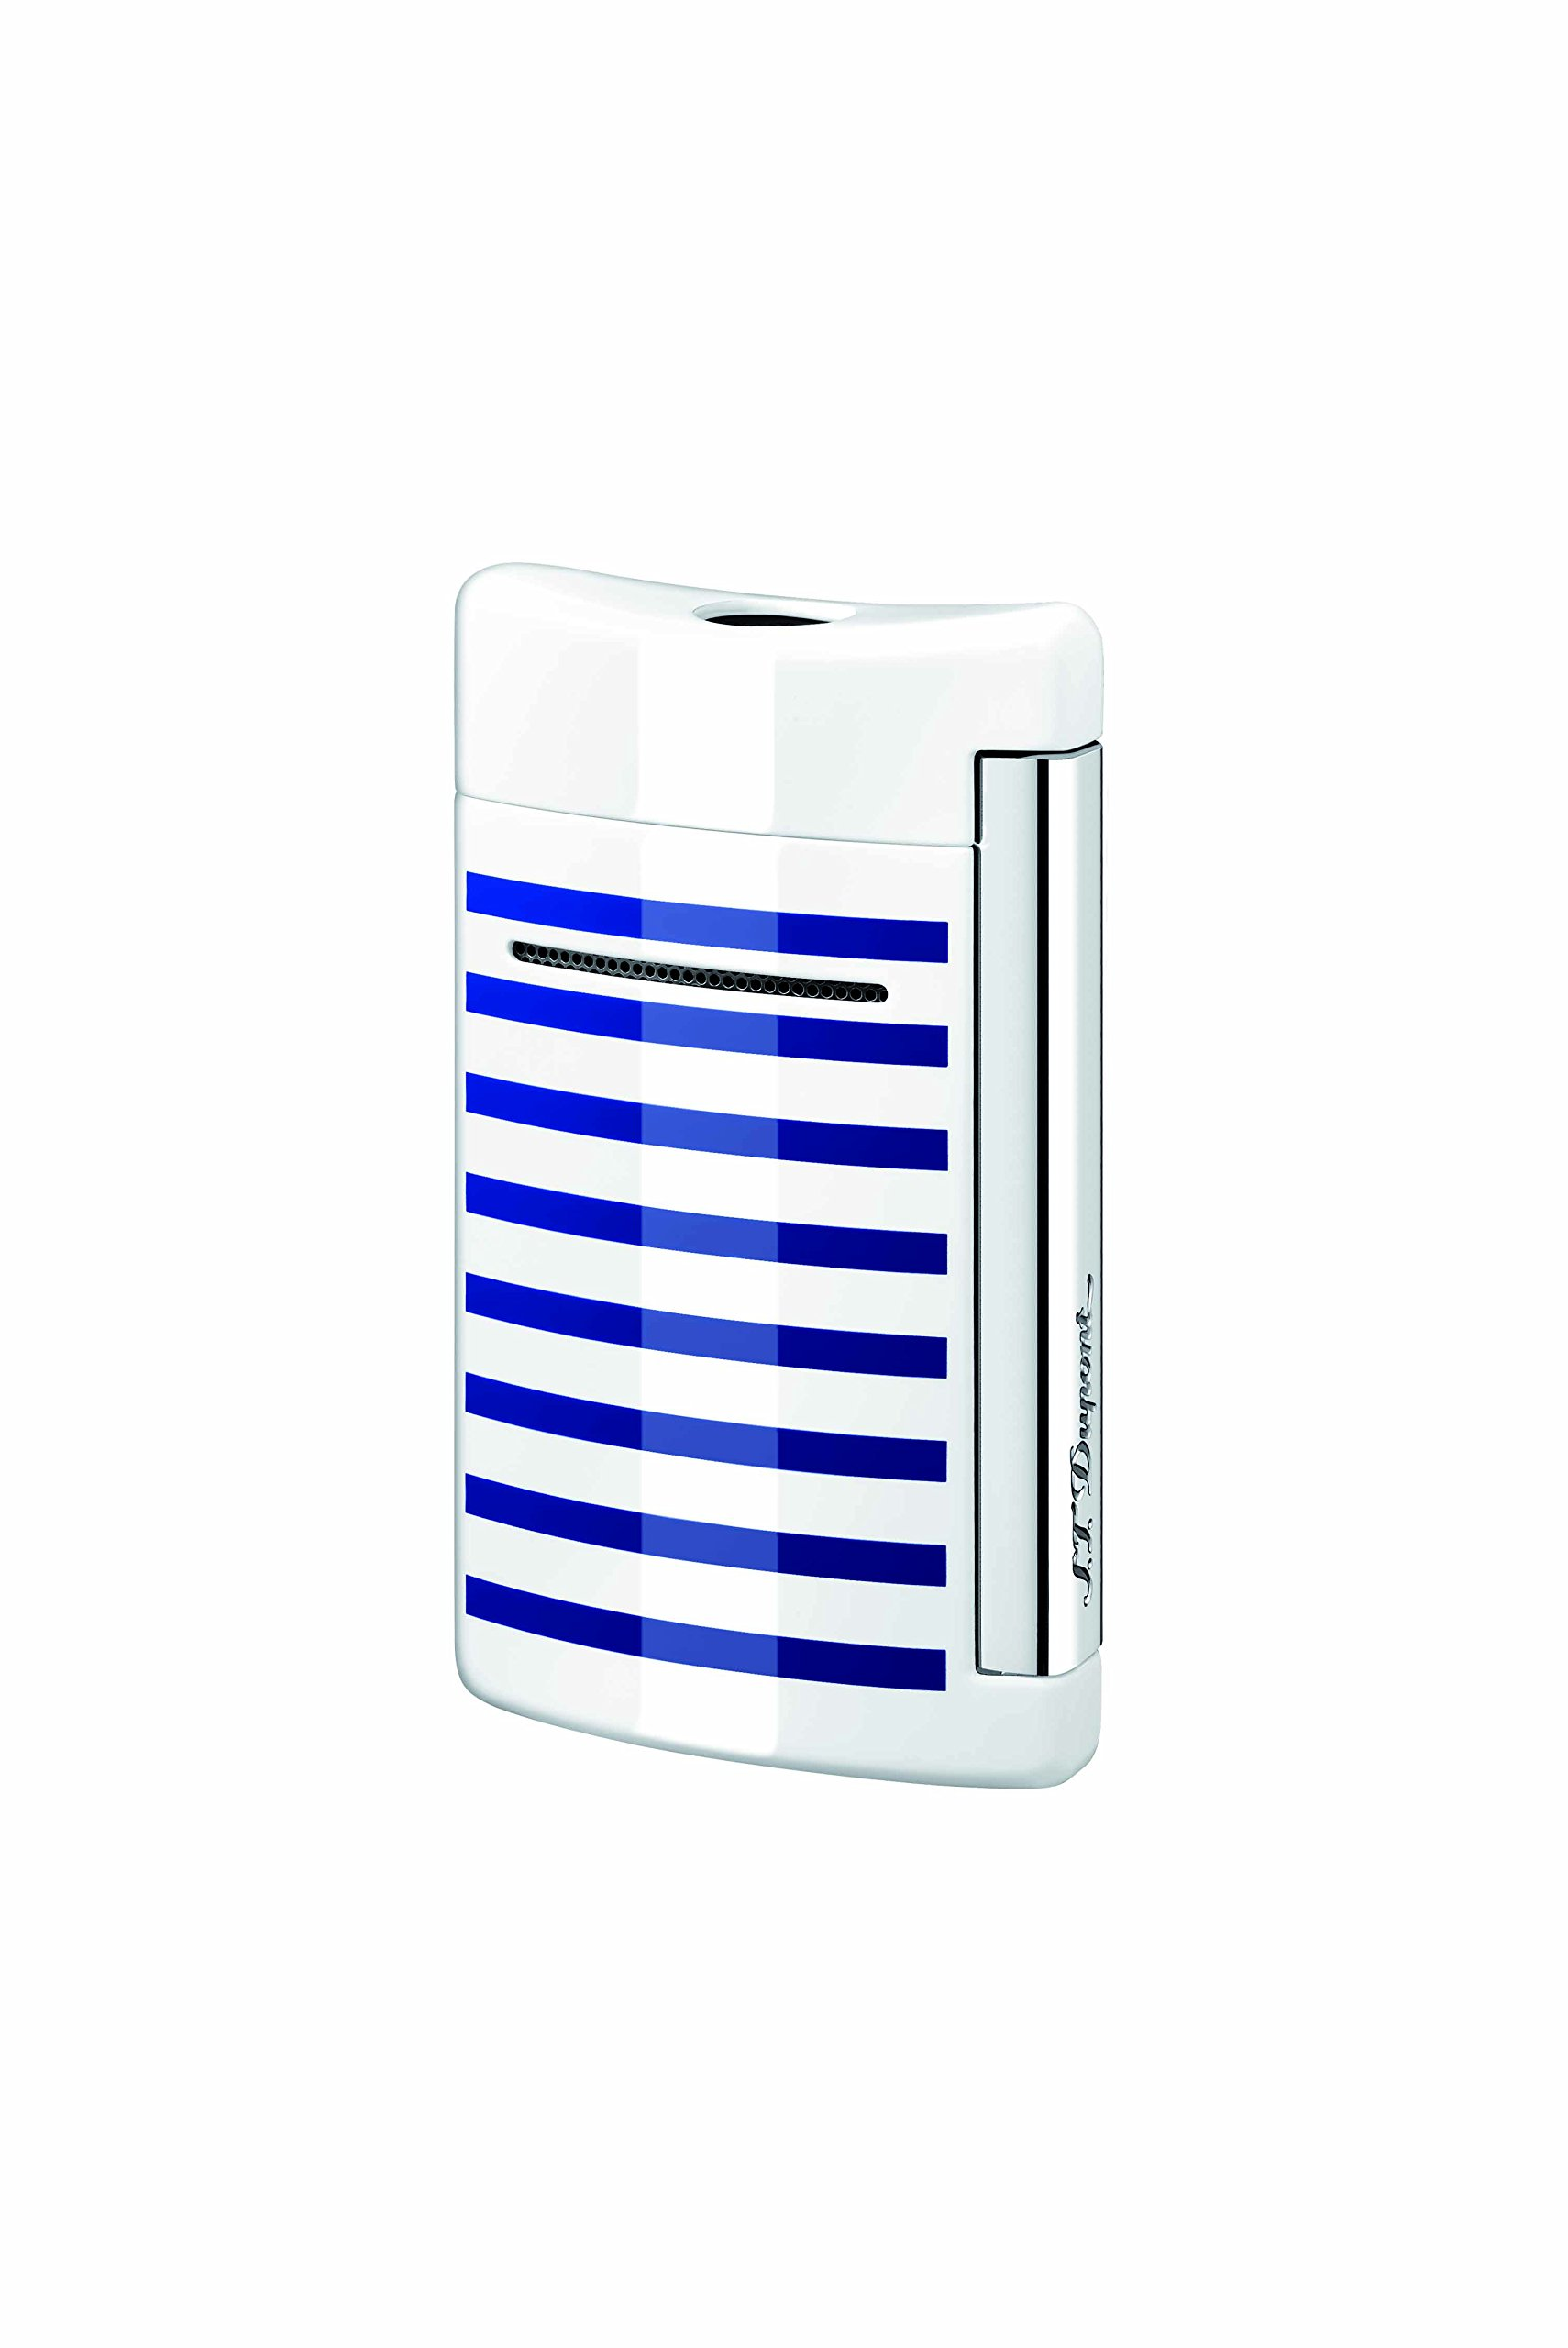 S.T. Dupont Minijet White with Blue Stripes Torch Flame Lighter 10106